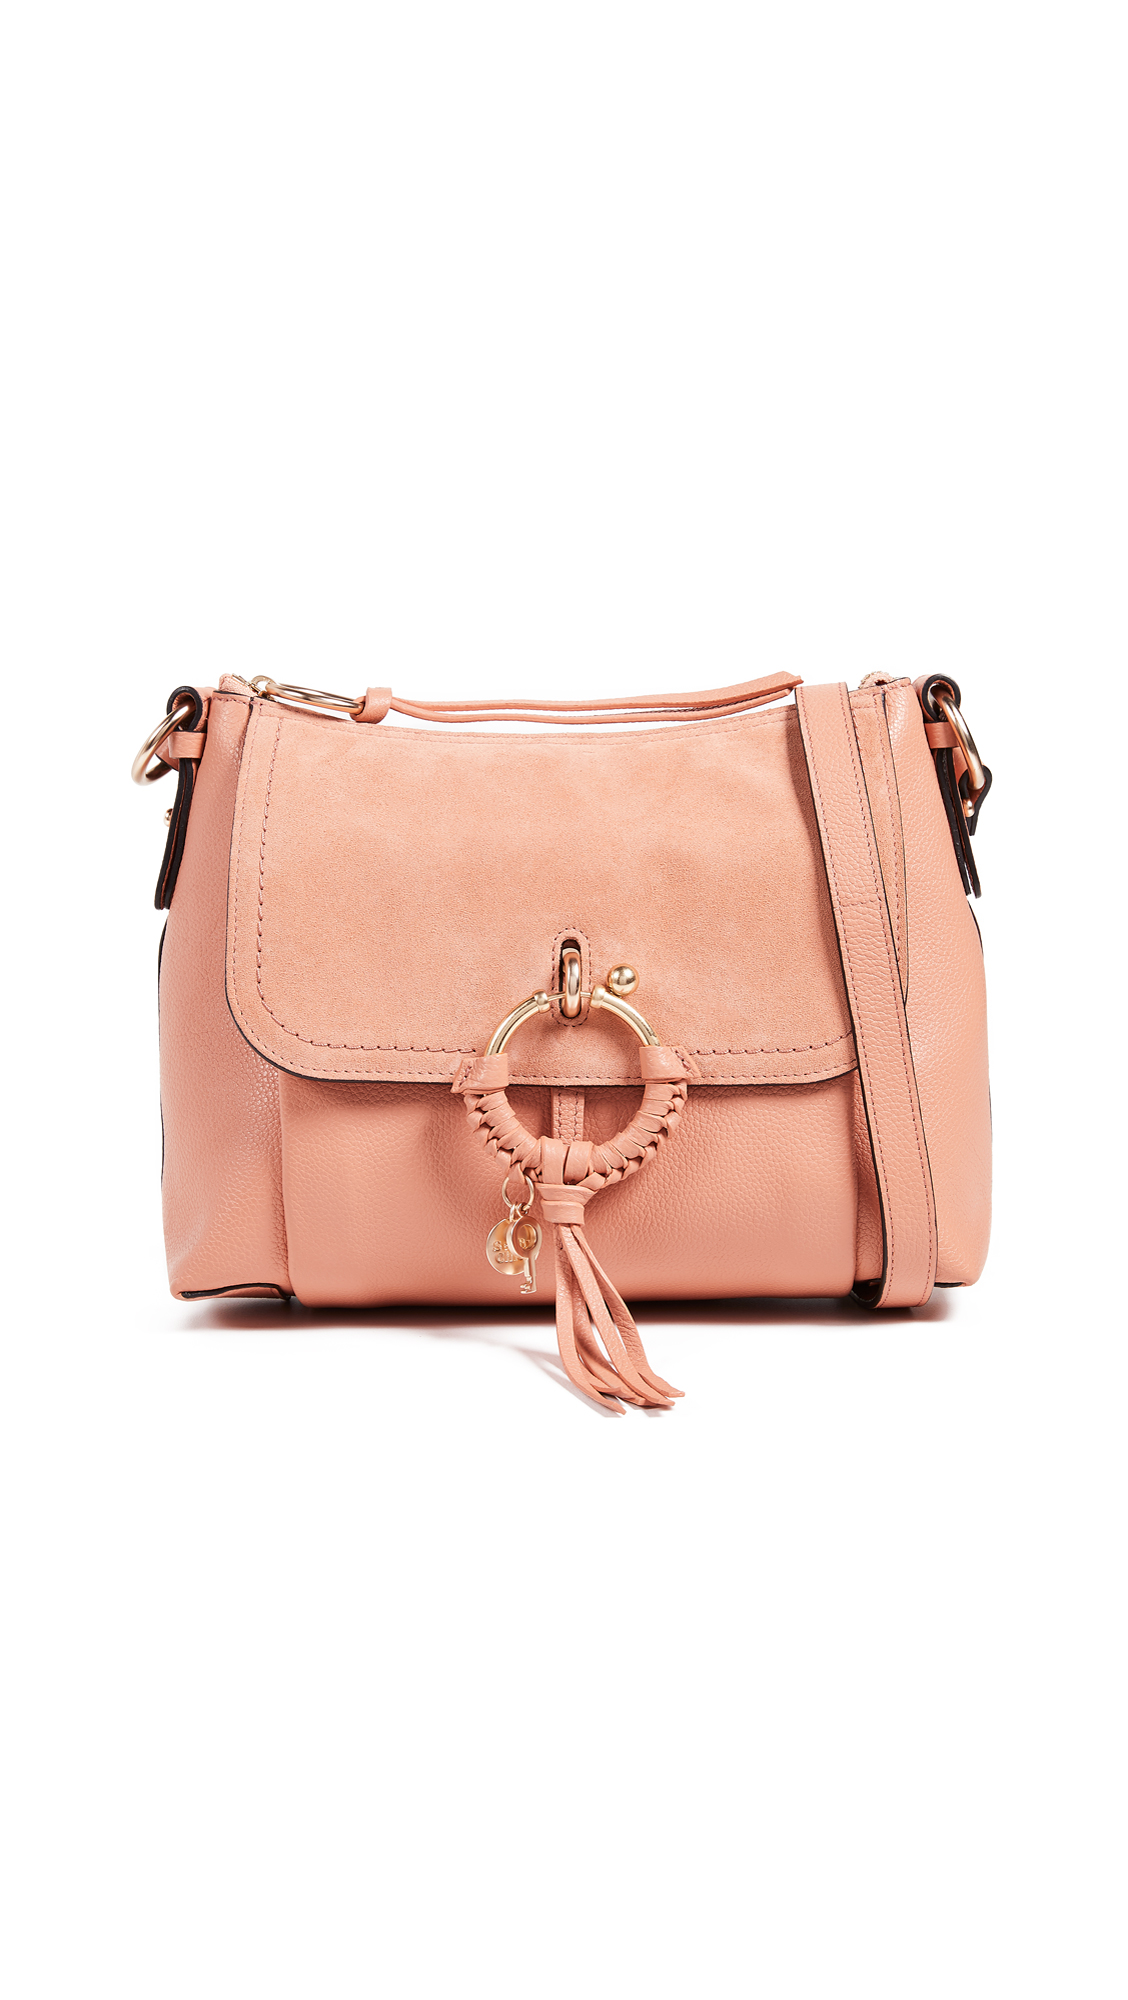 JOAN SMALL SHOULDER BAG from Shopbop